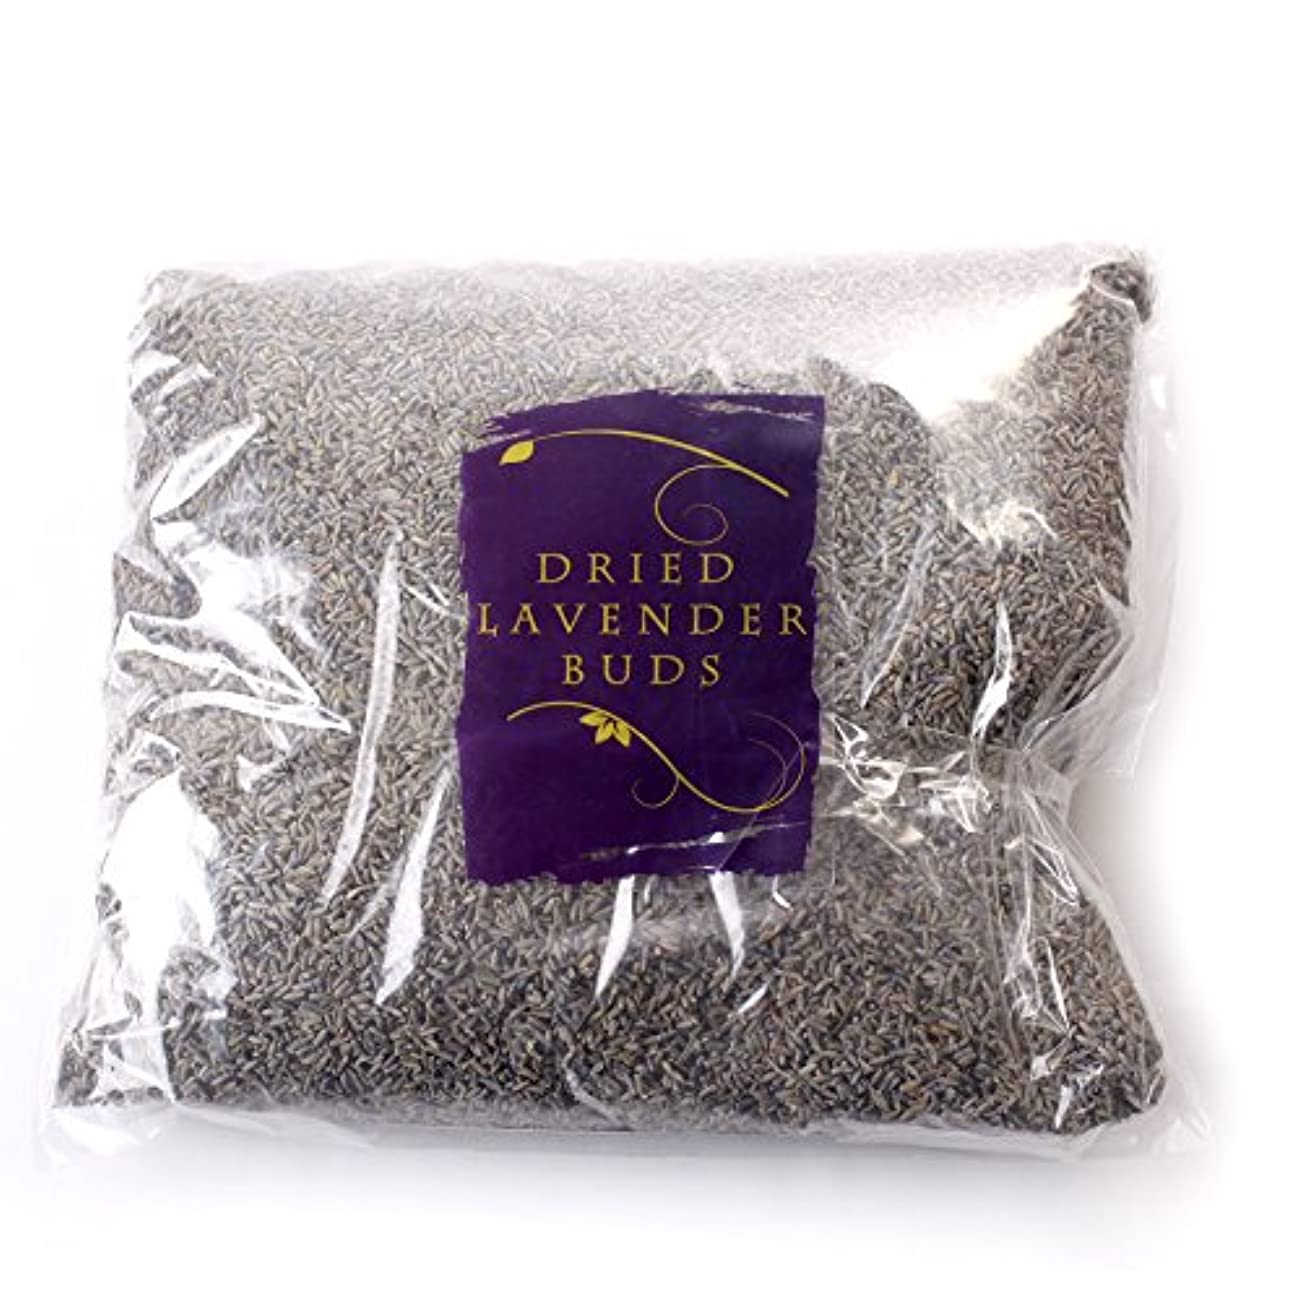 Dried Lavender Buds - 500g